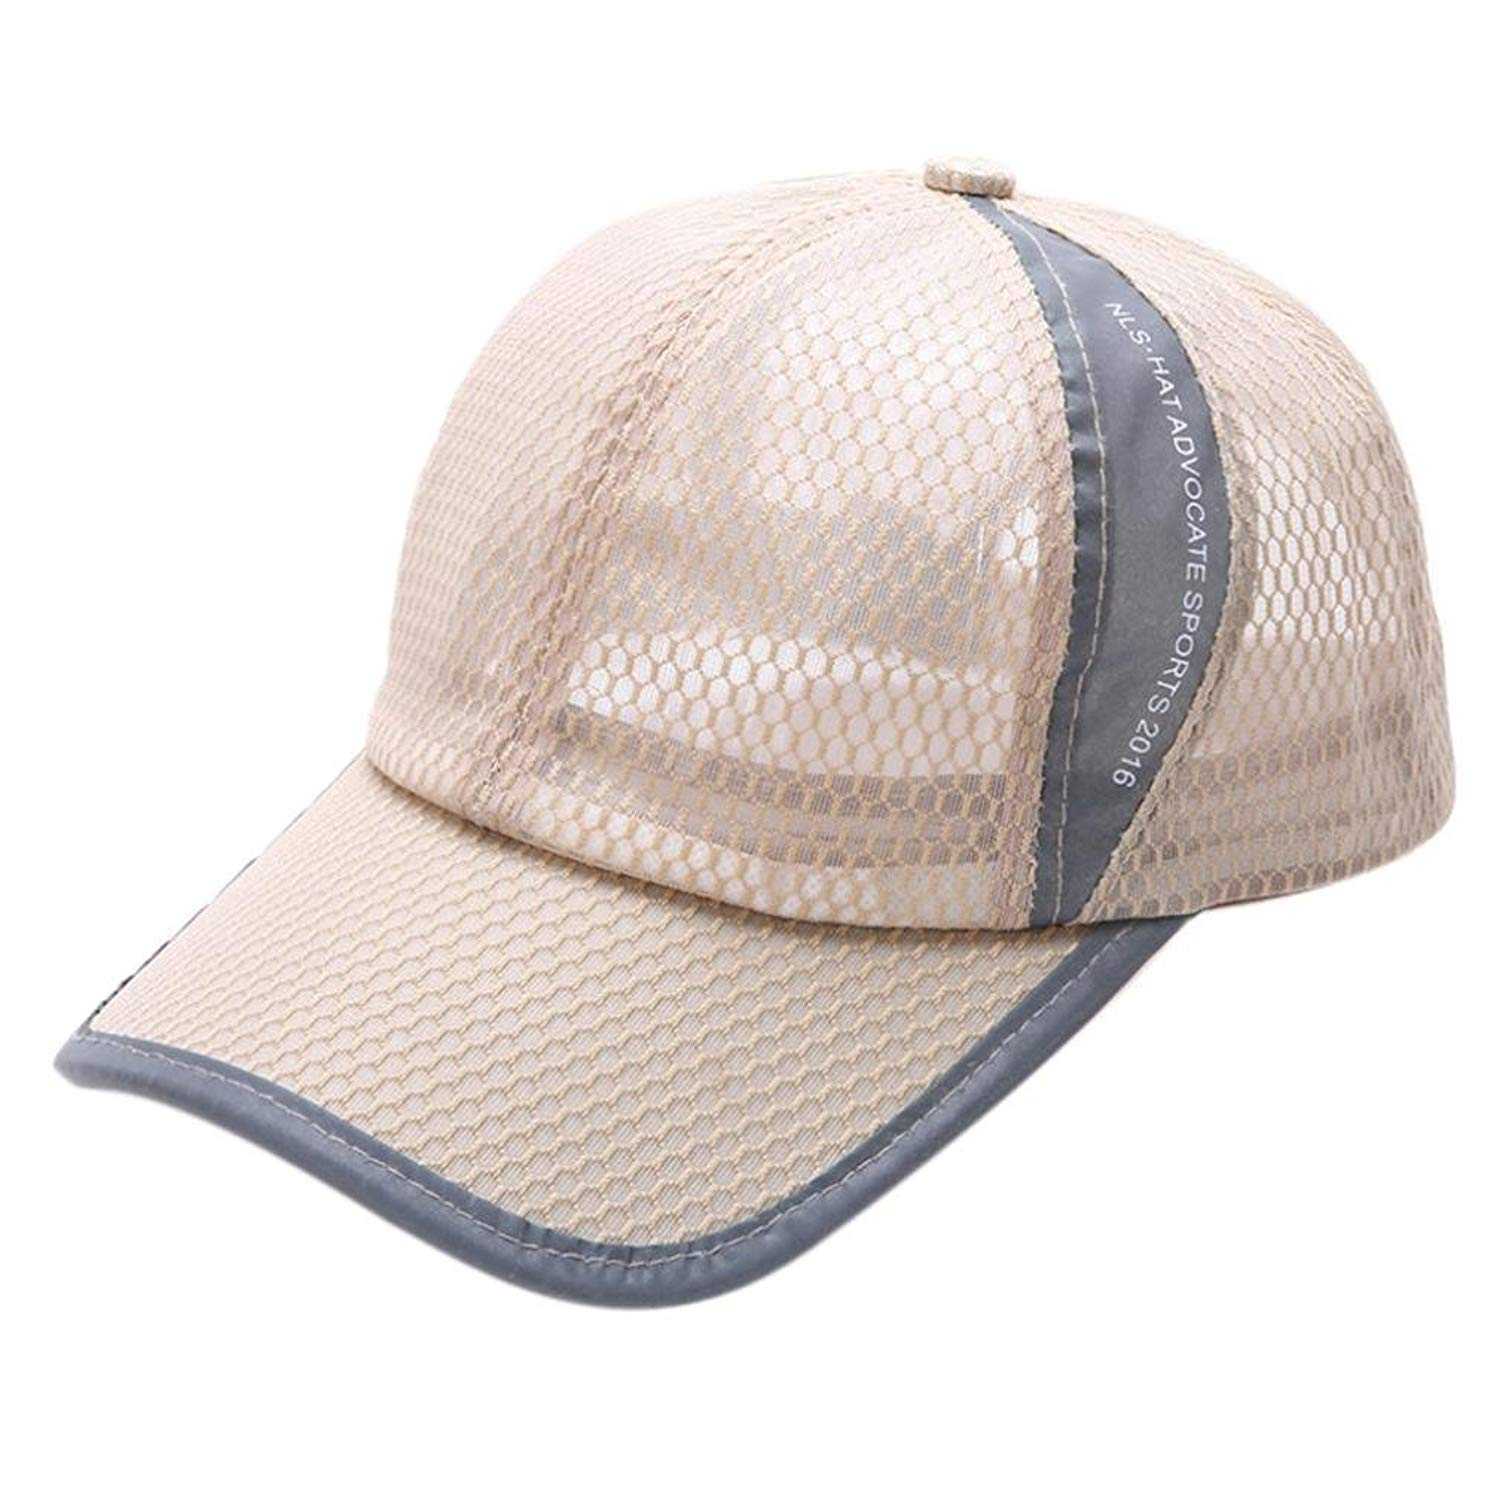 Baseball Cap, Summer Lightweight Breathable Mesh Hats for Men Women Sport Snapback Outdoor Sun Cap